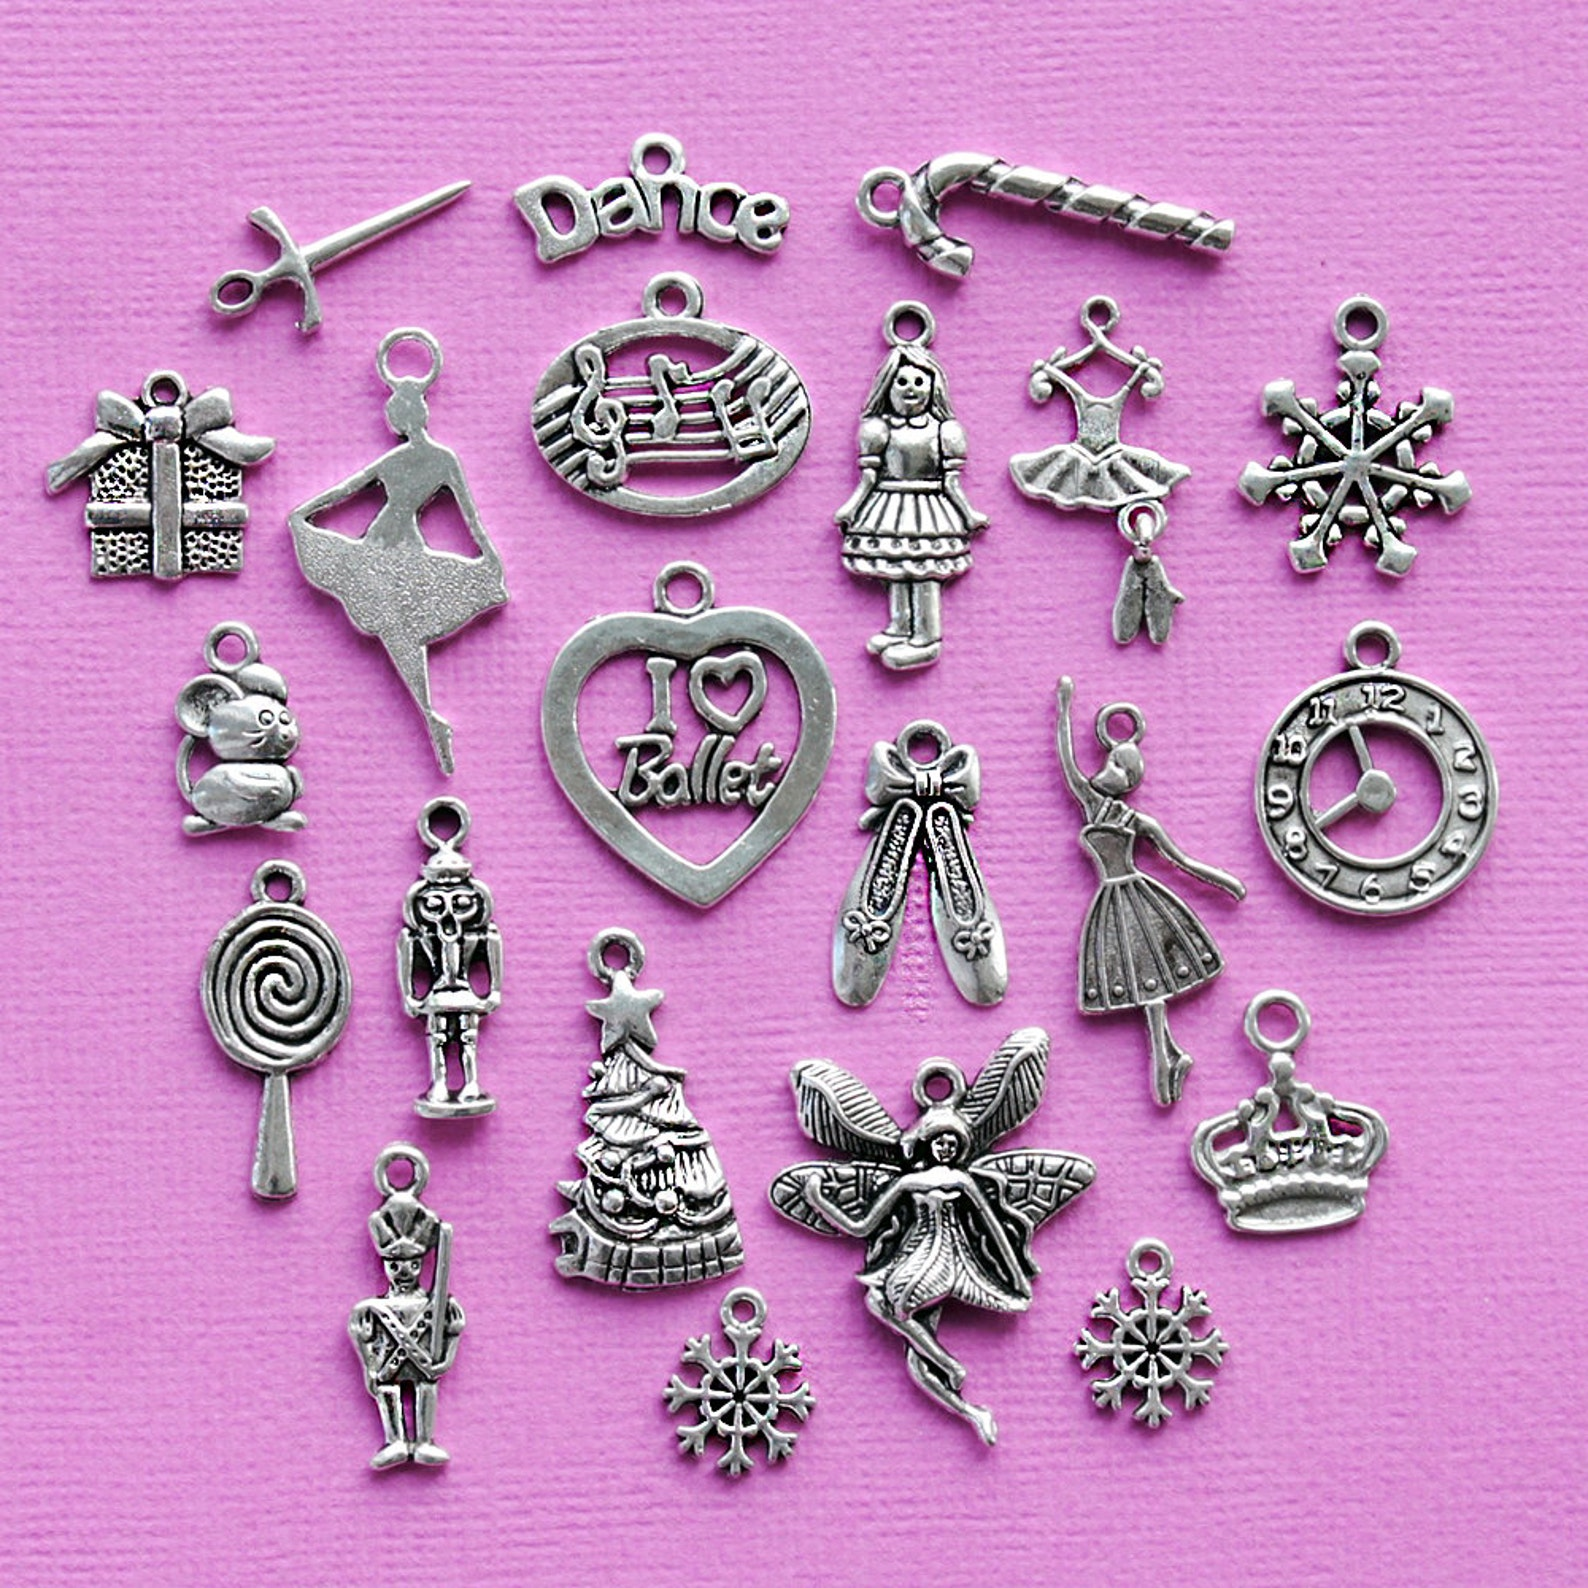 the nutcracker ballet deluxe charm collection 22 charms antique silver tone - col323